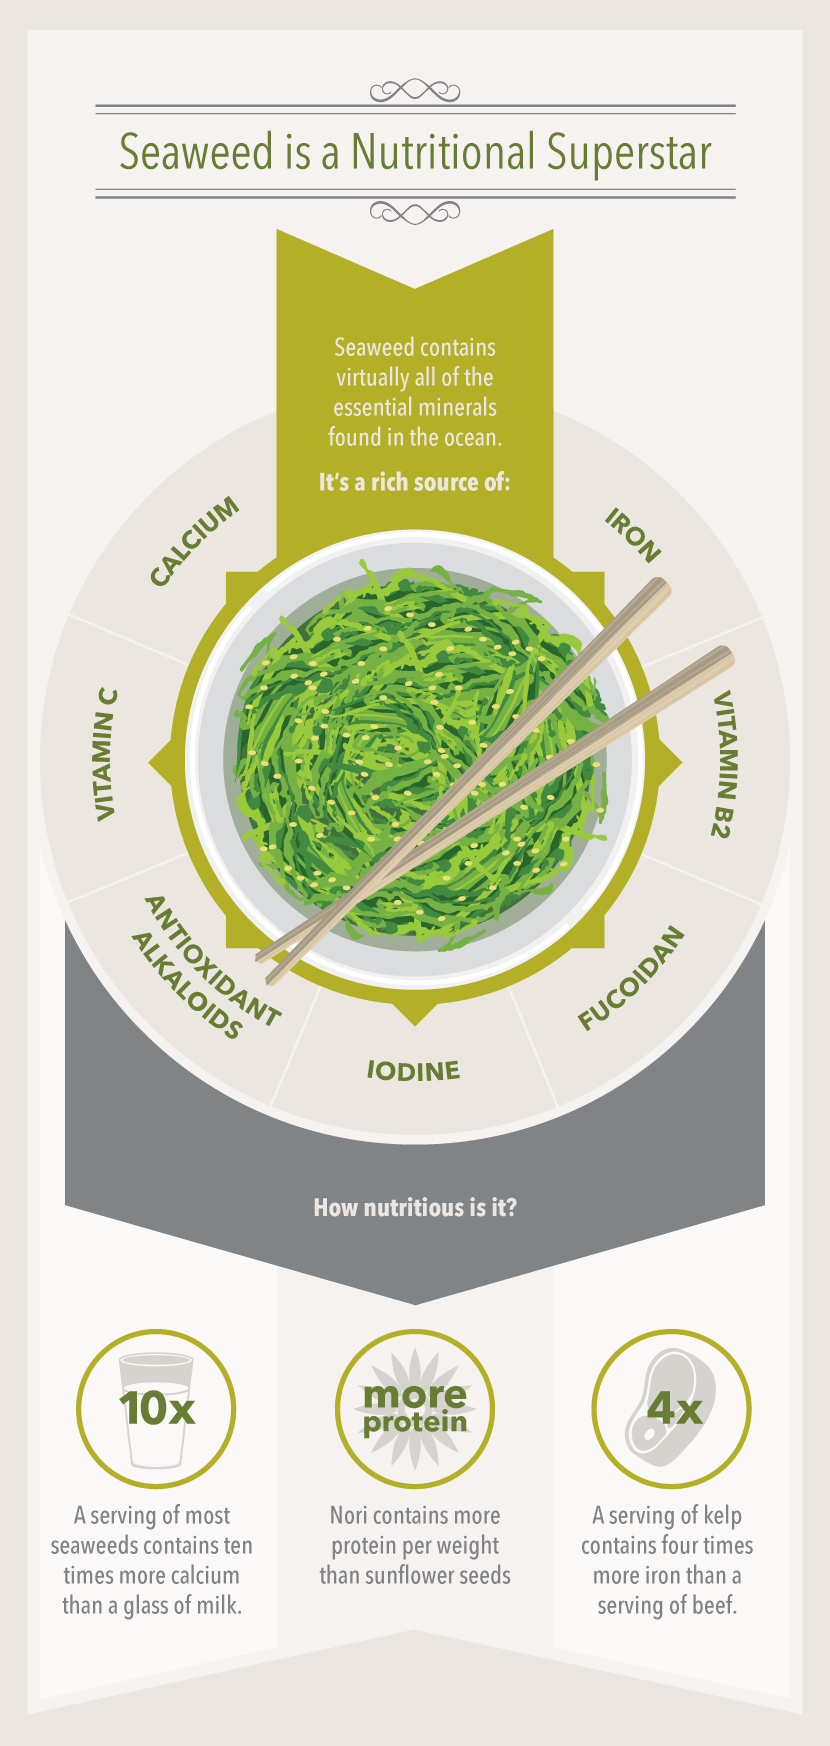 Seaweed is a Nutritional Superstar - A Guide to Eating Seaweed